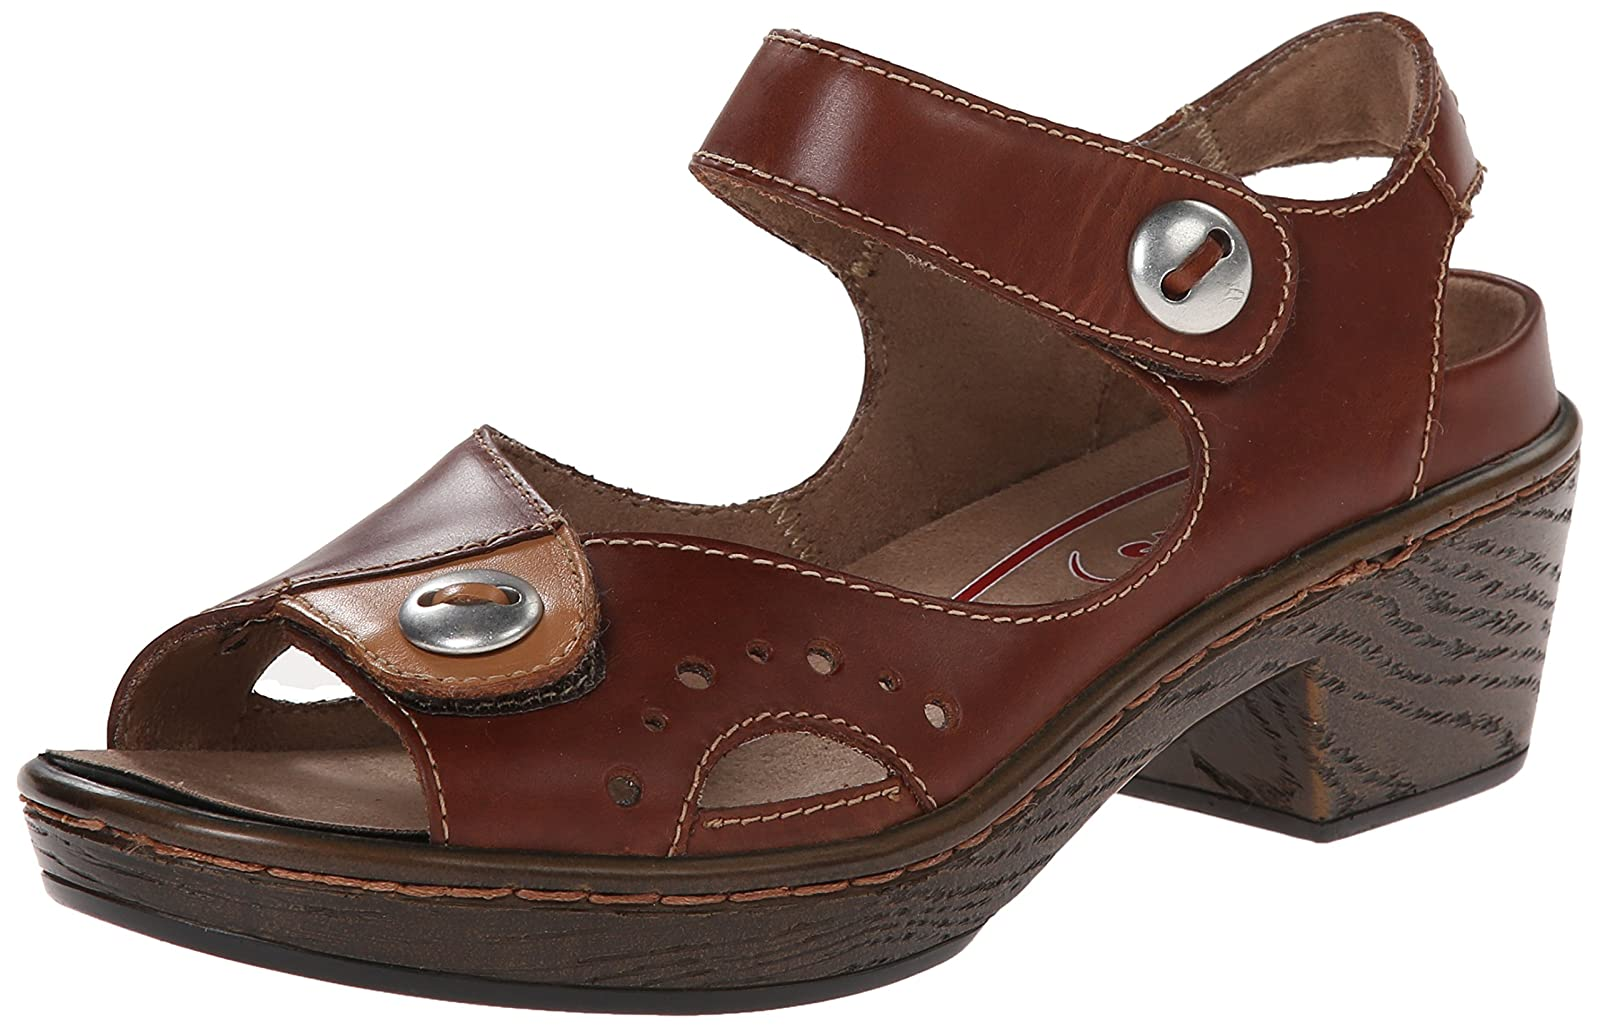 Klogs USA Women's Cruise Dress Sandal black - 1